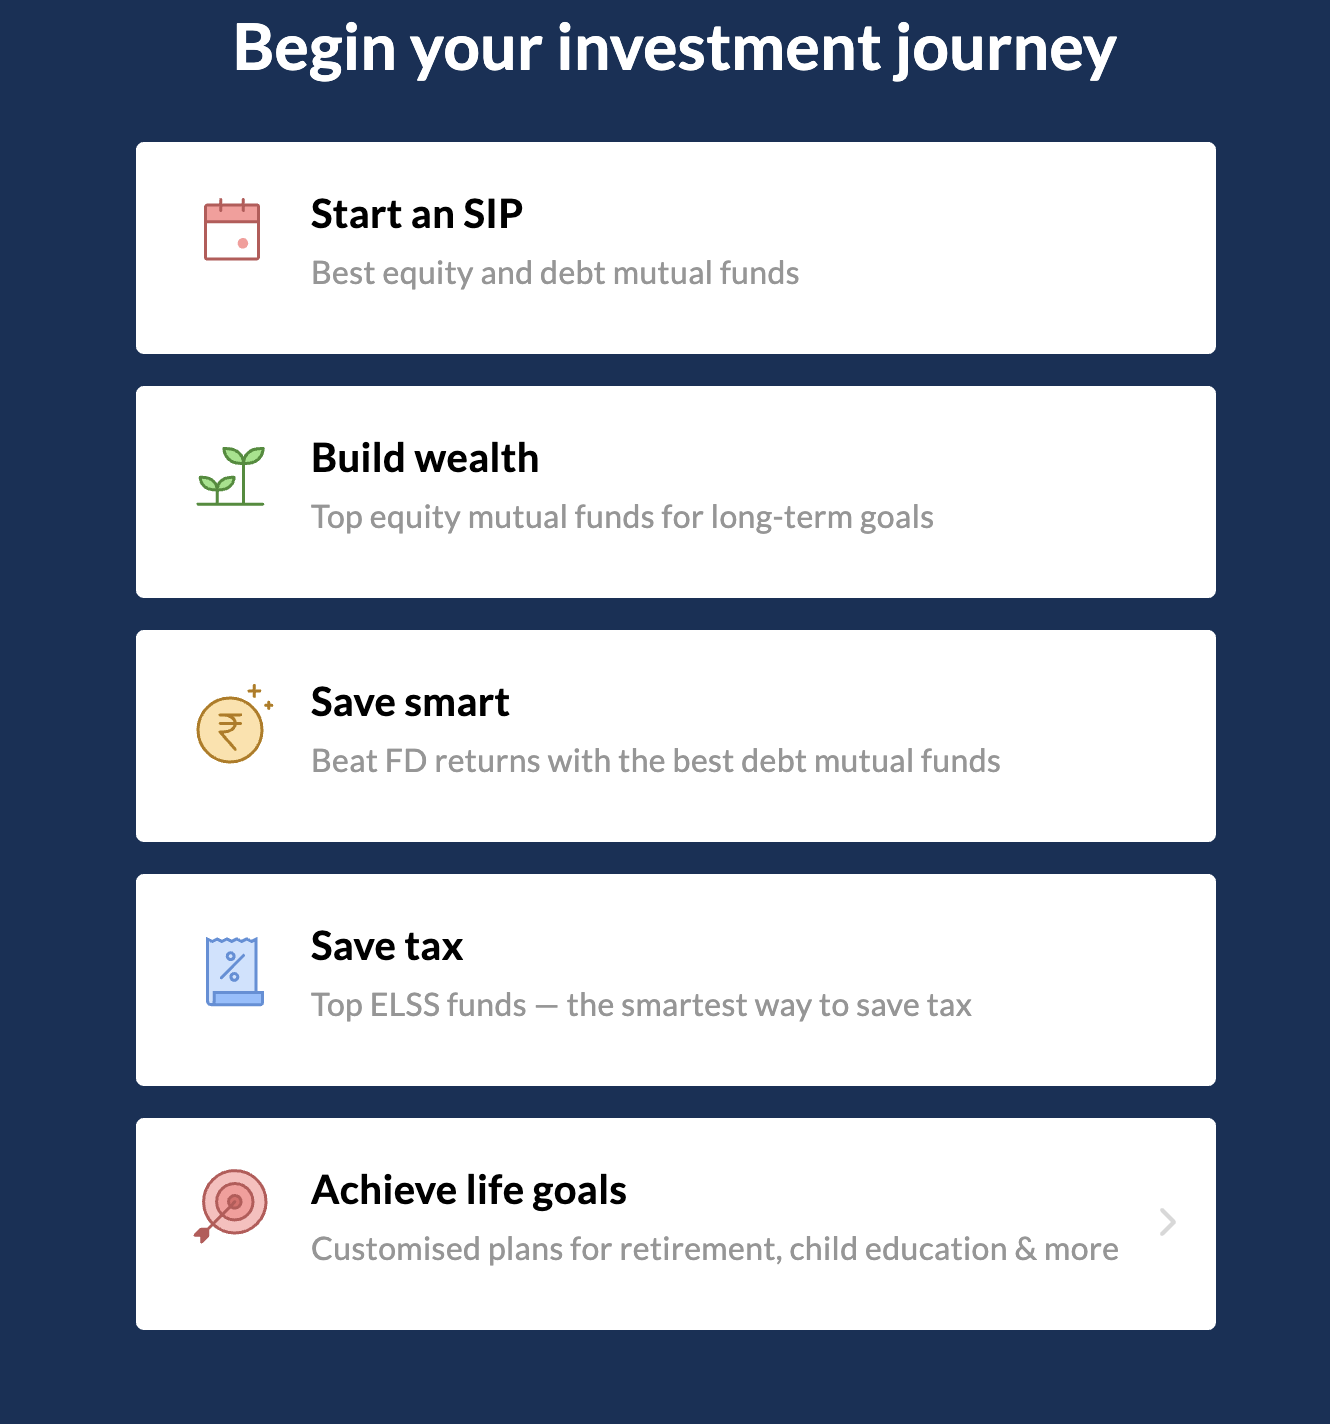 Begin your investment journey